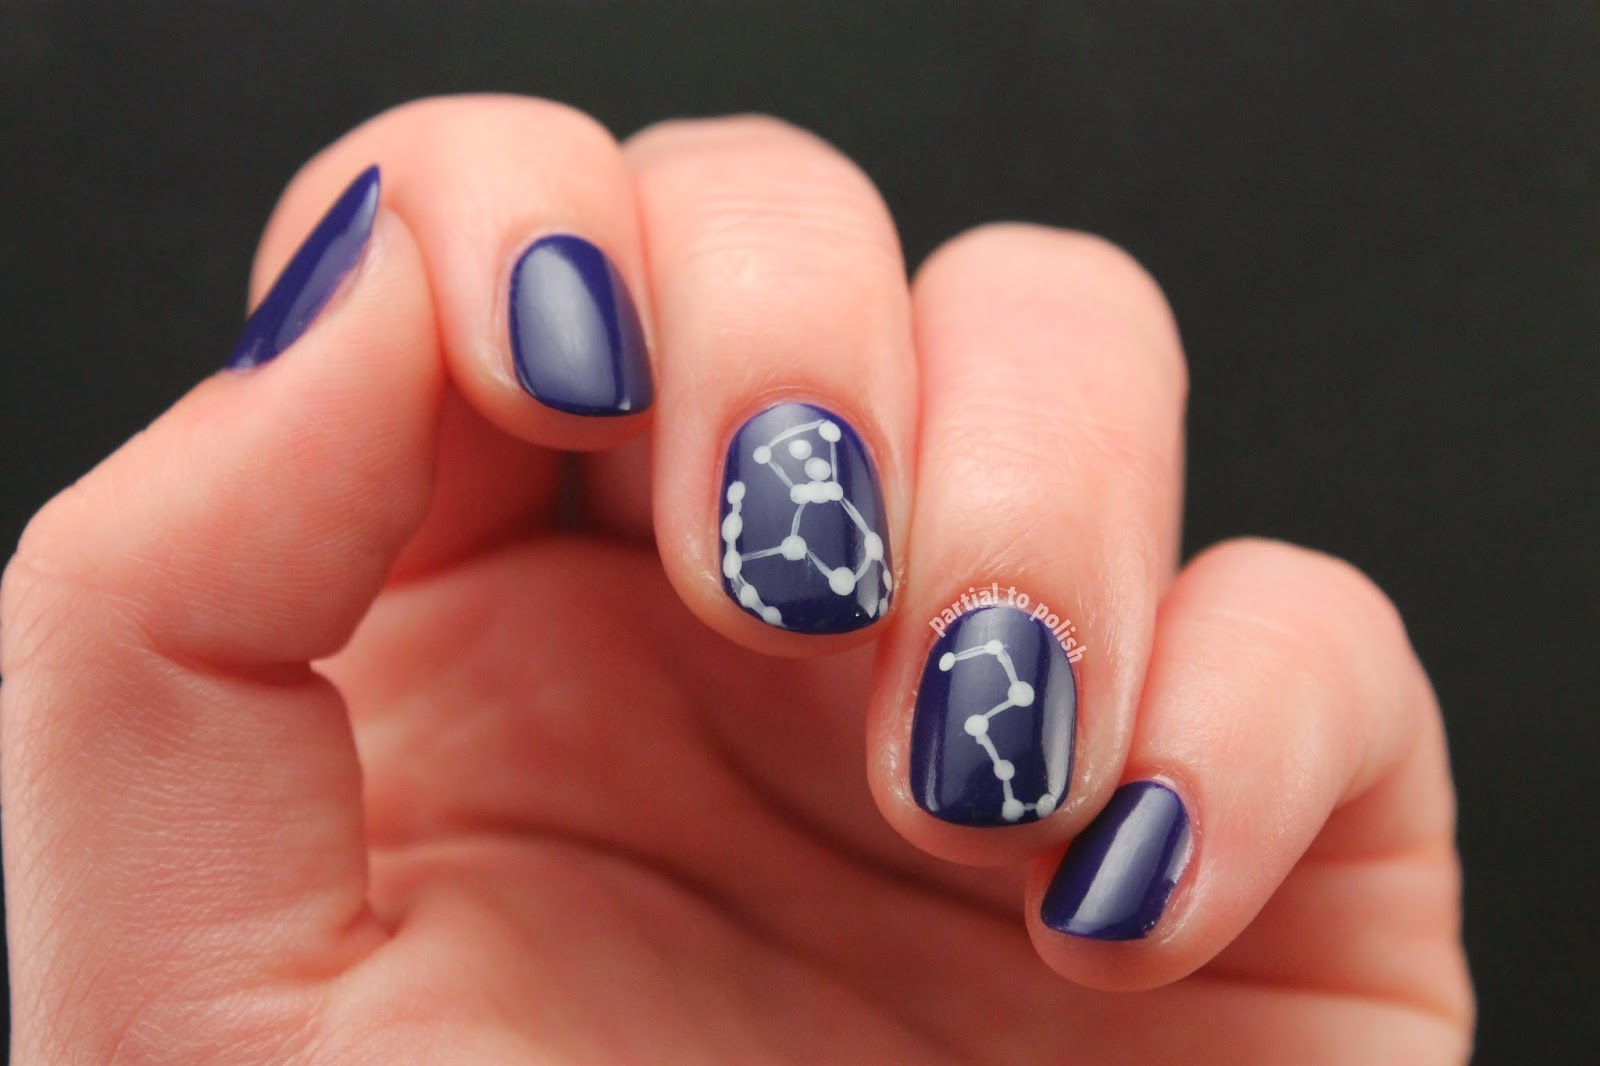 OPI Constellation Nail Art